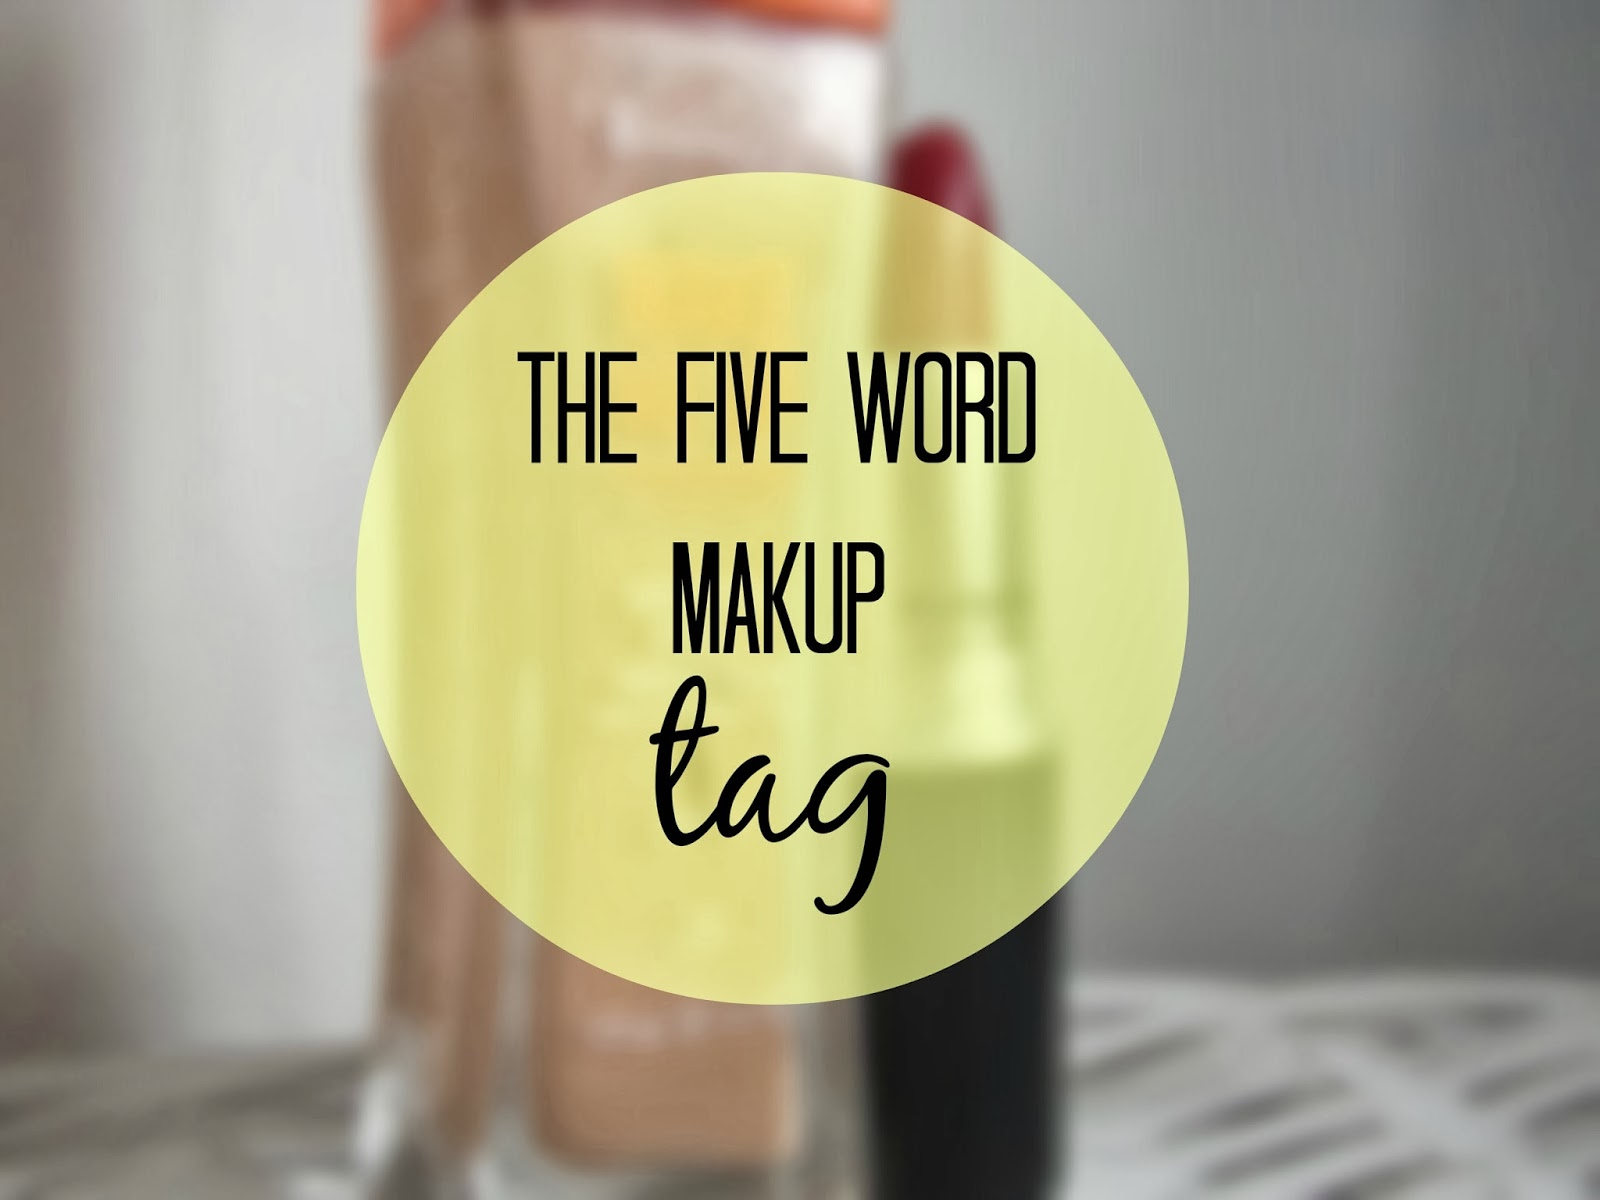 The Five Work Makeup Tag